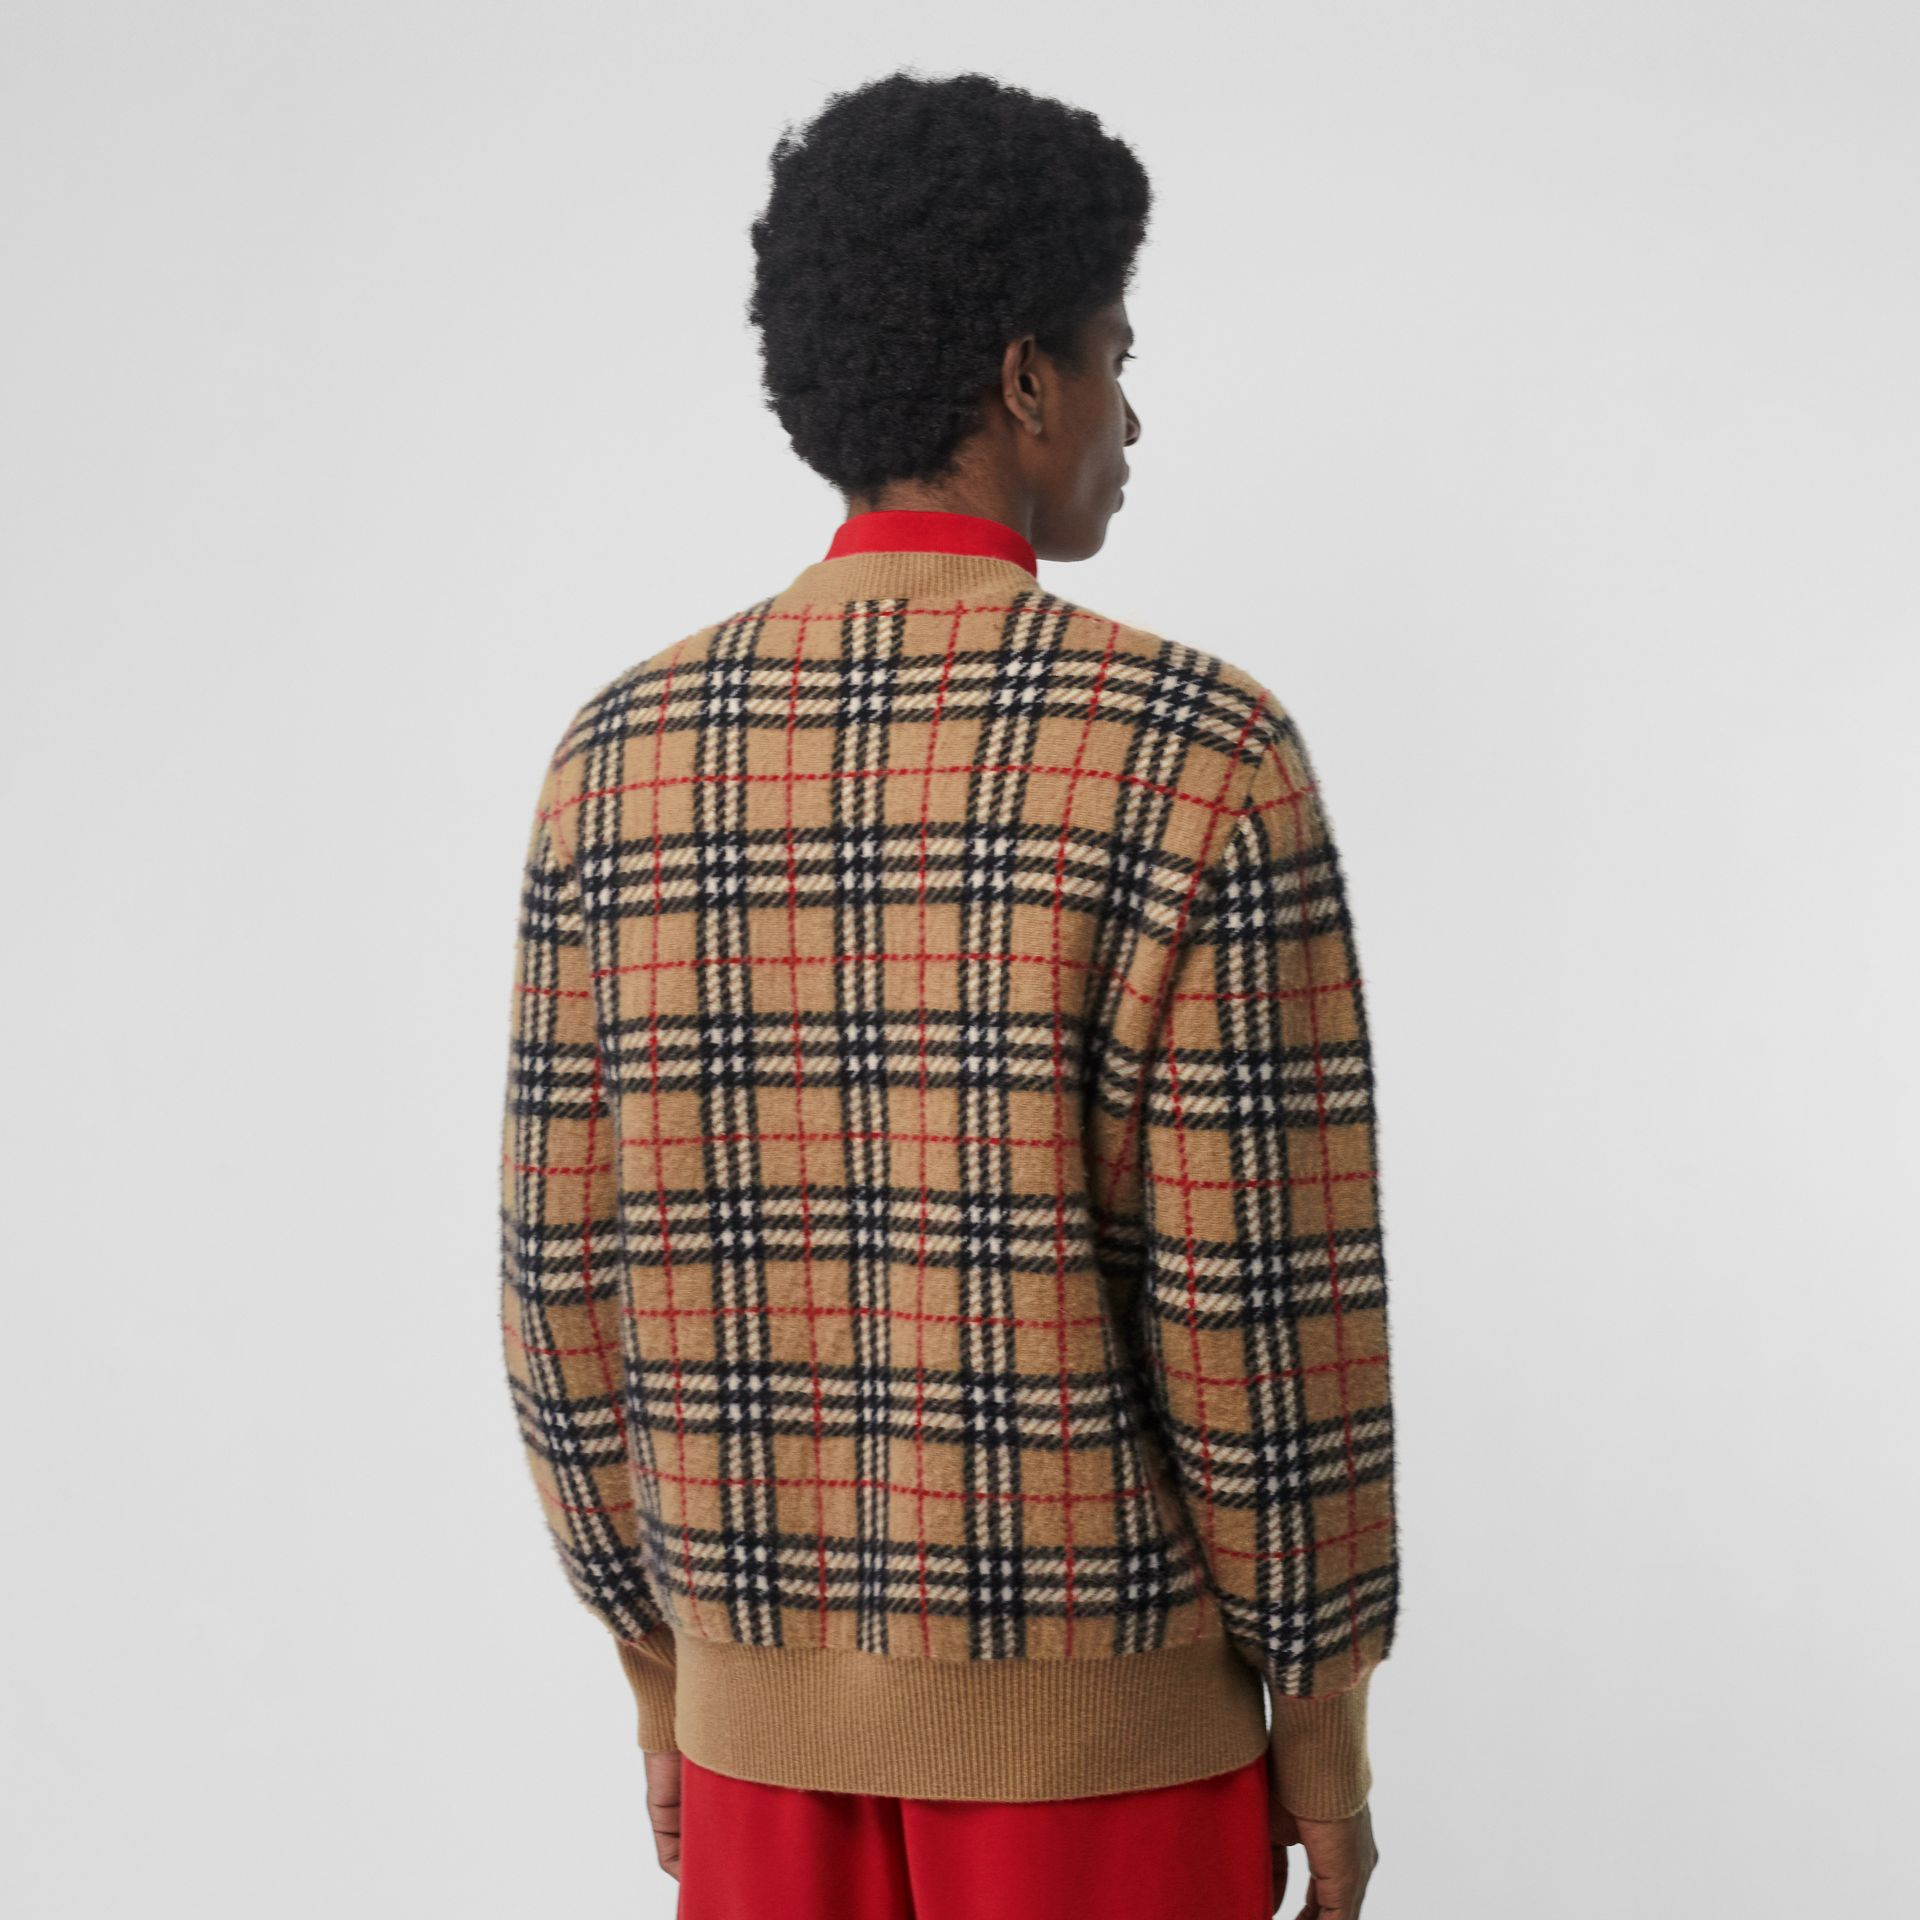 Vintage Check Cashmere Jacquard Sweater in Camel - Men | Burberry Hong Kong - gallery image 2